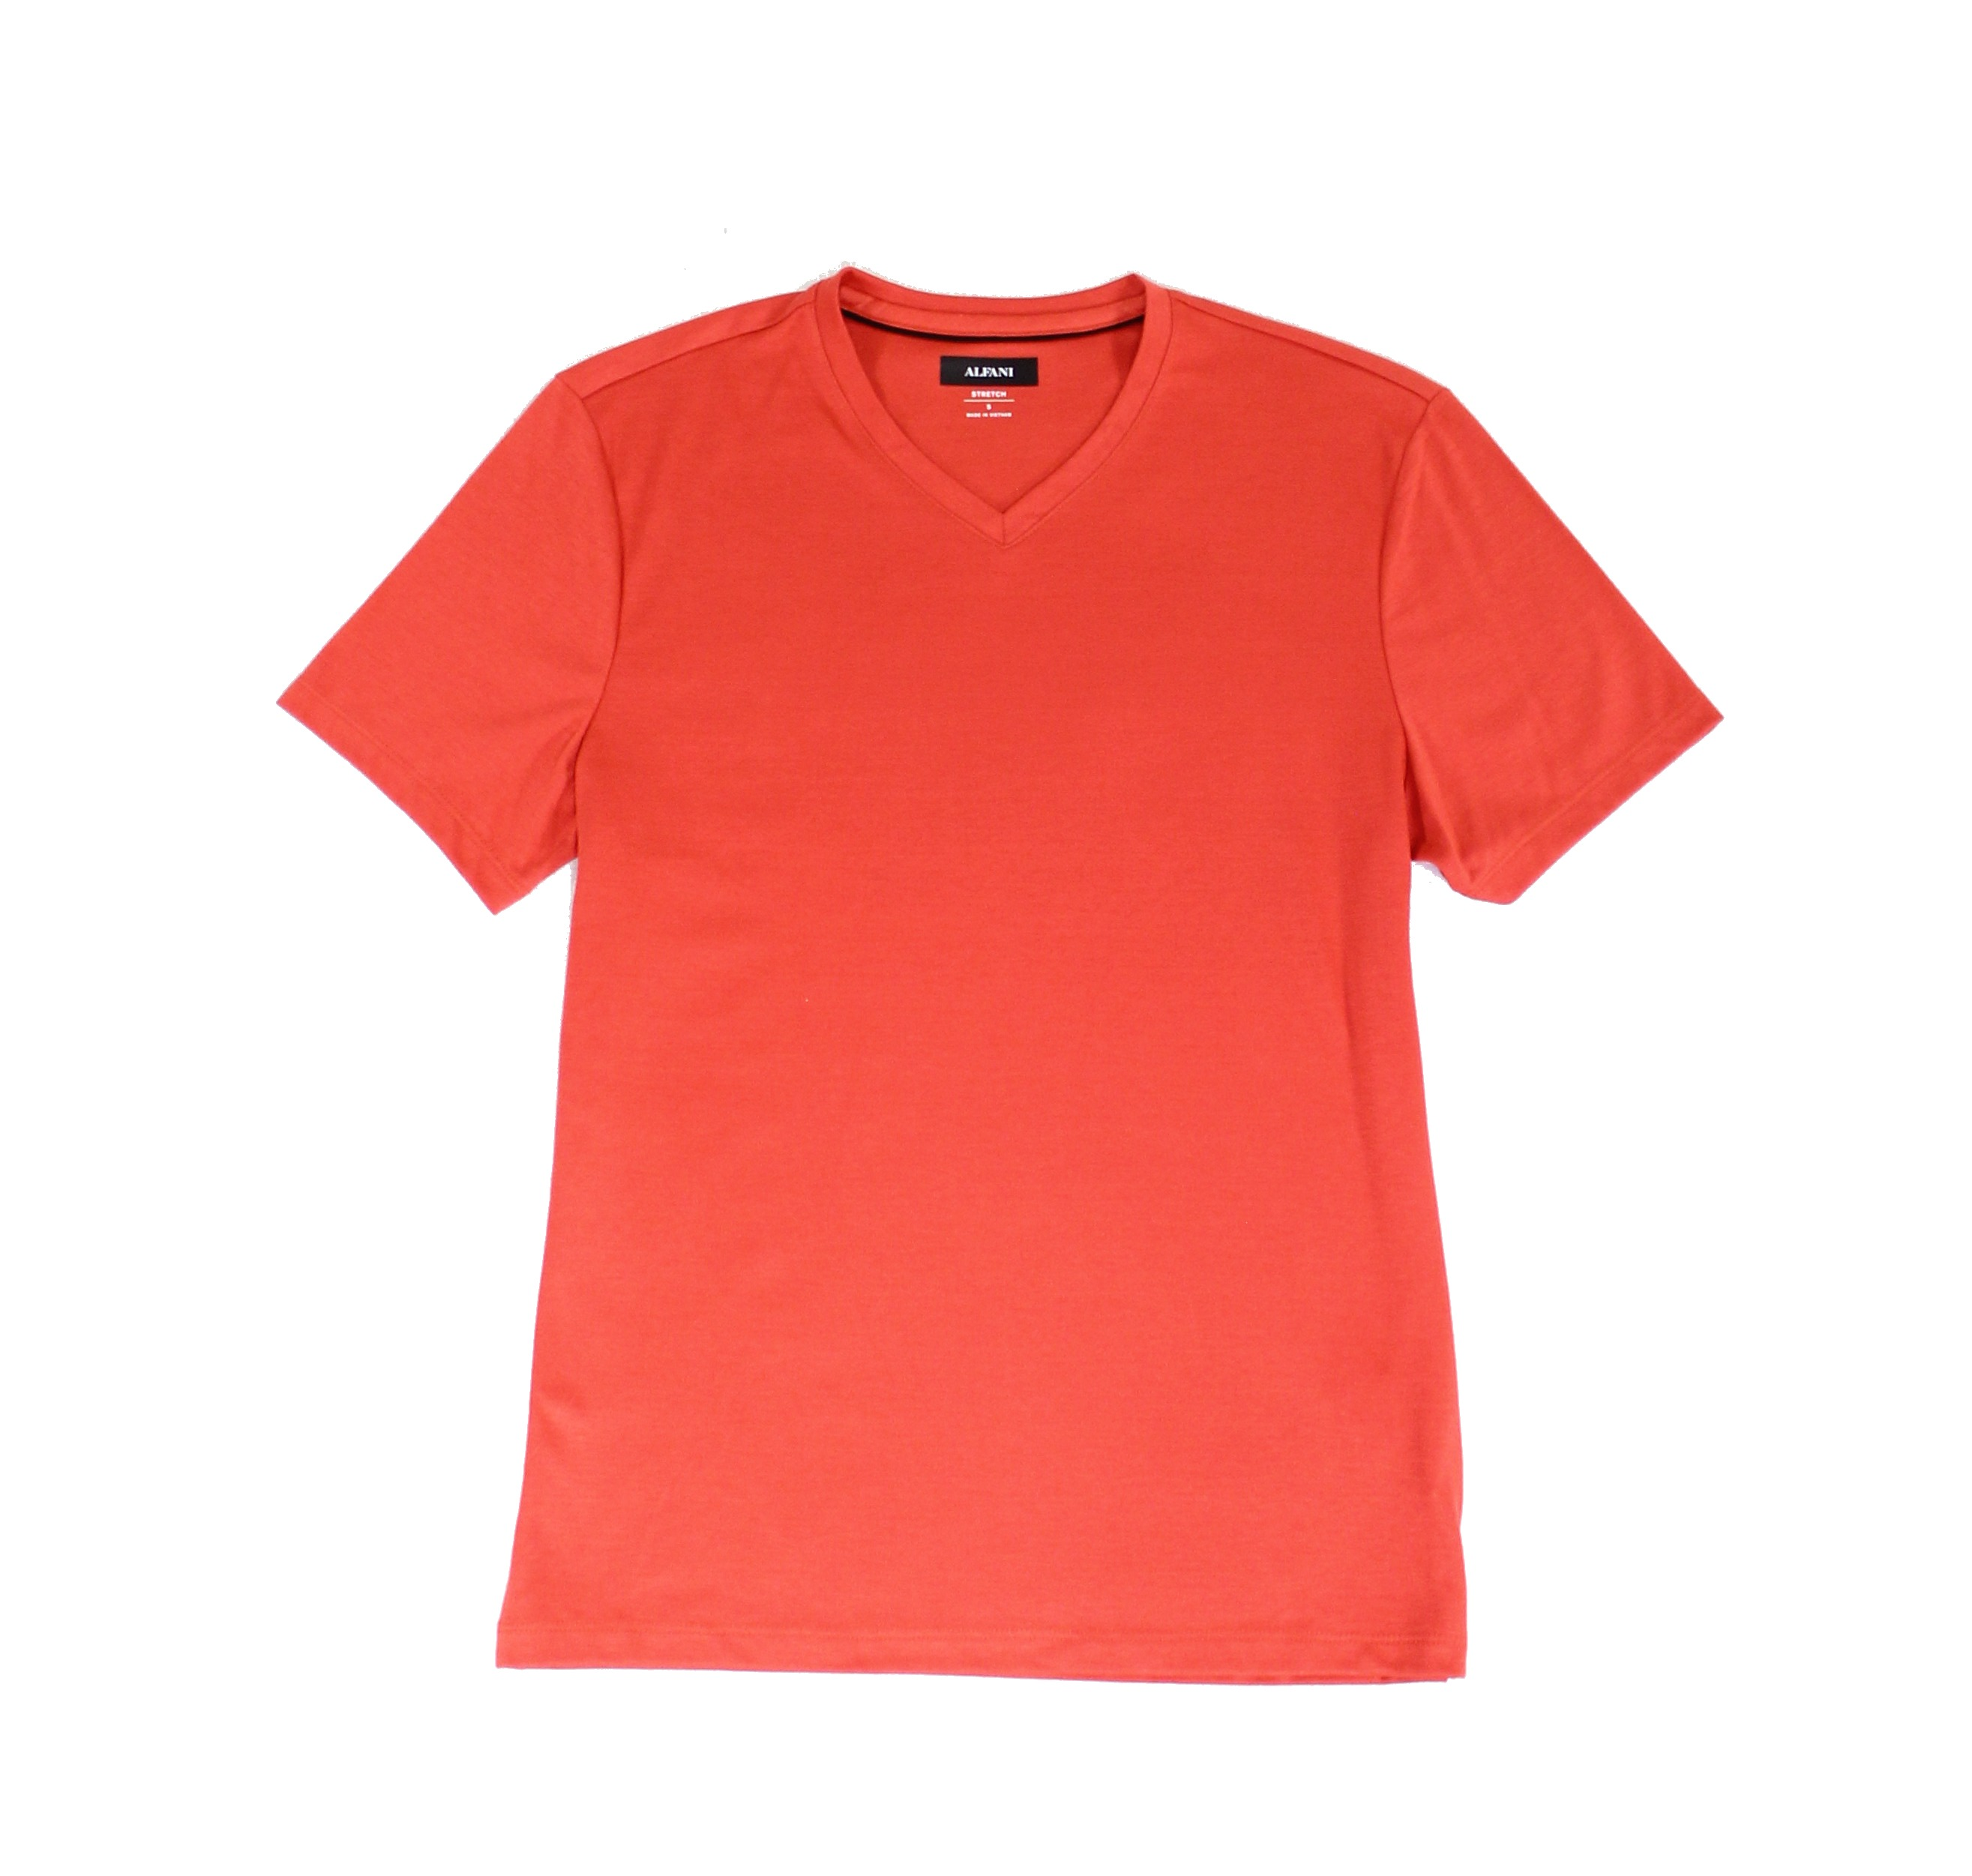 New-Alfani-NEW-Baked-Apple-Red-Mens-Size-XL-Stretch-V-Neck-Tee-Shirt-40-016